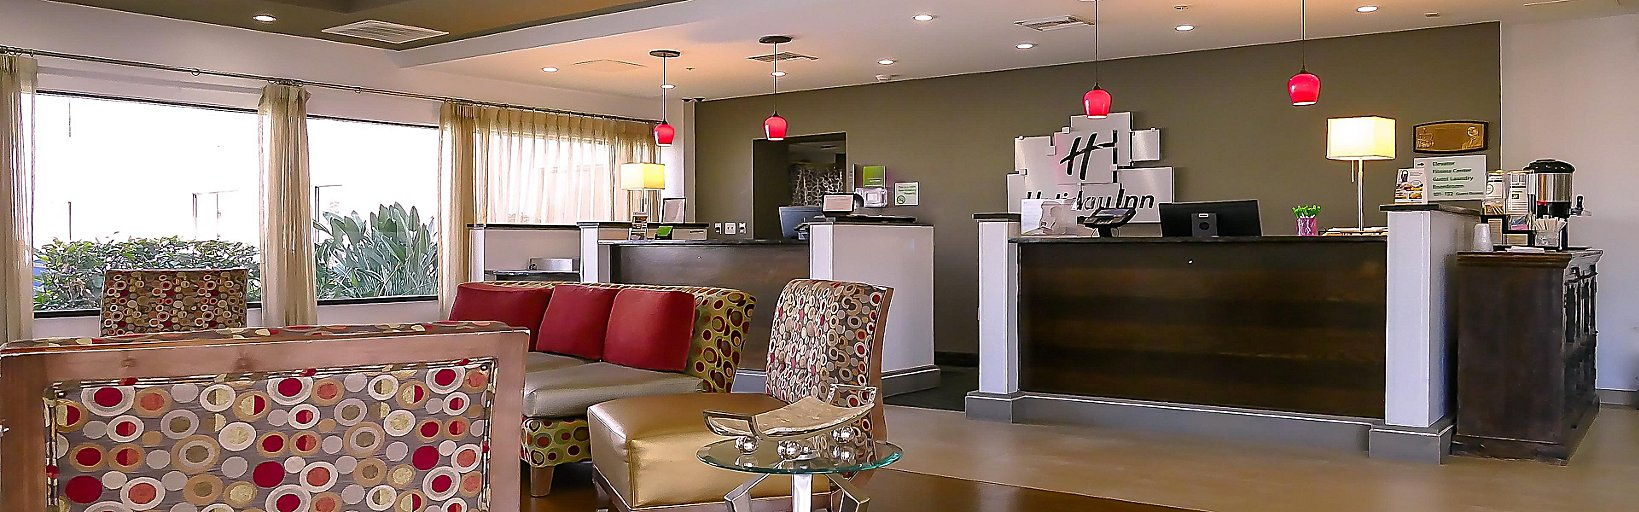 Holiday Inn Fort Myers Downtown Area Hotel By Ihg